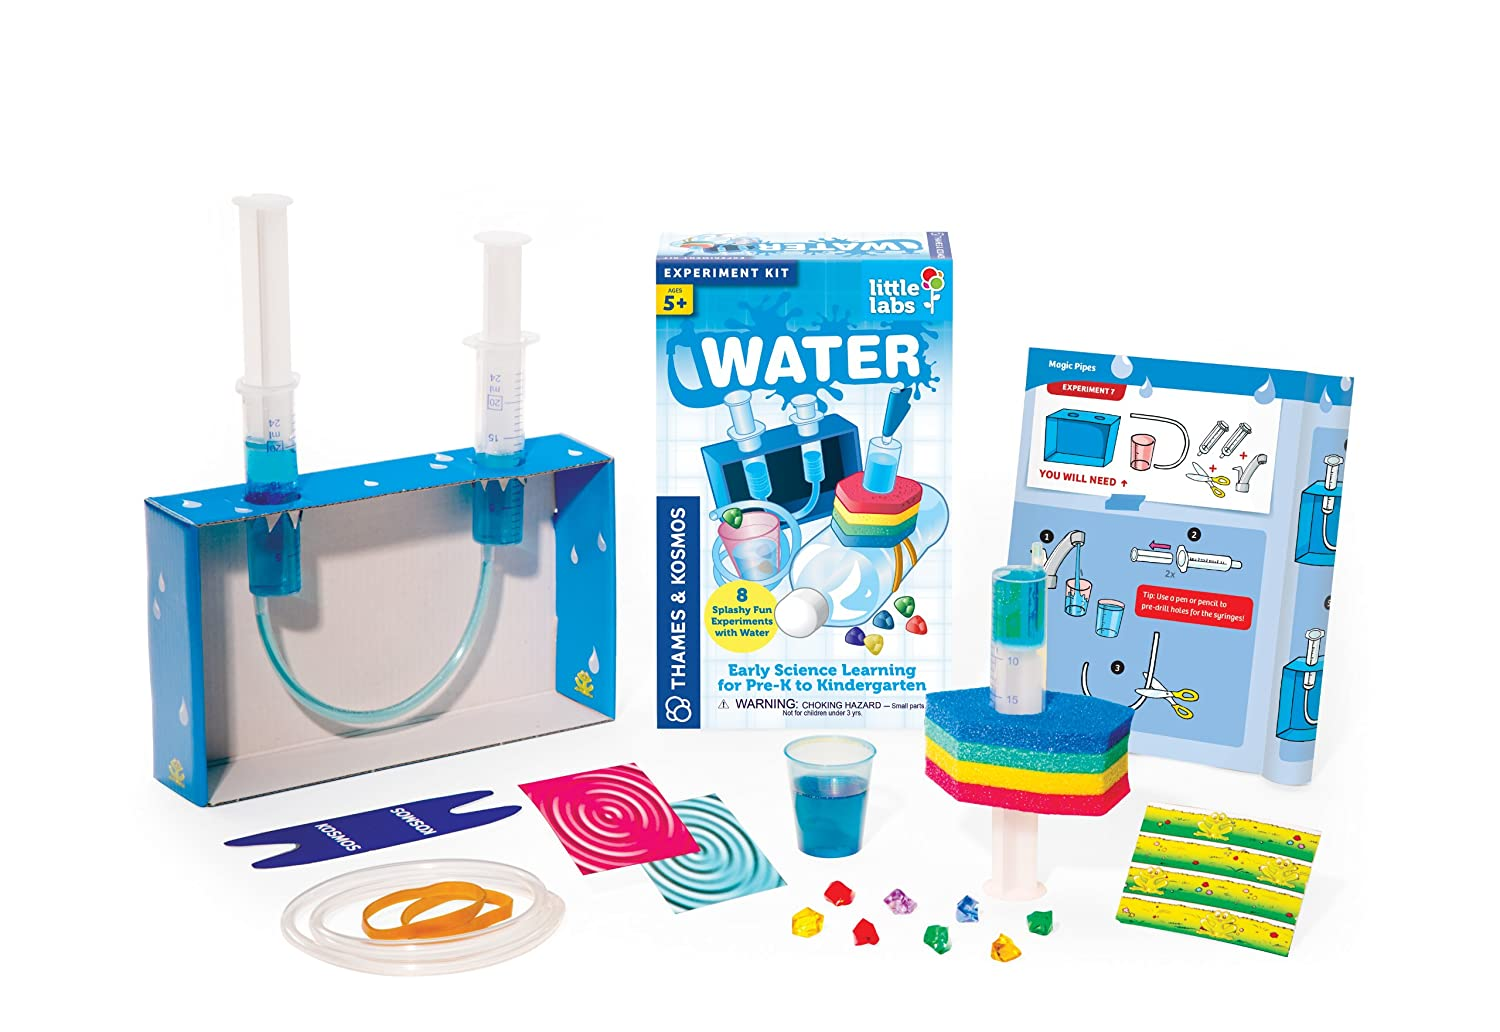 Thames & Kosmos Little Labs Water Science Kit 602031